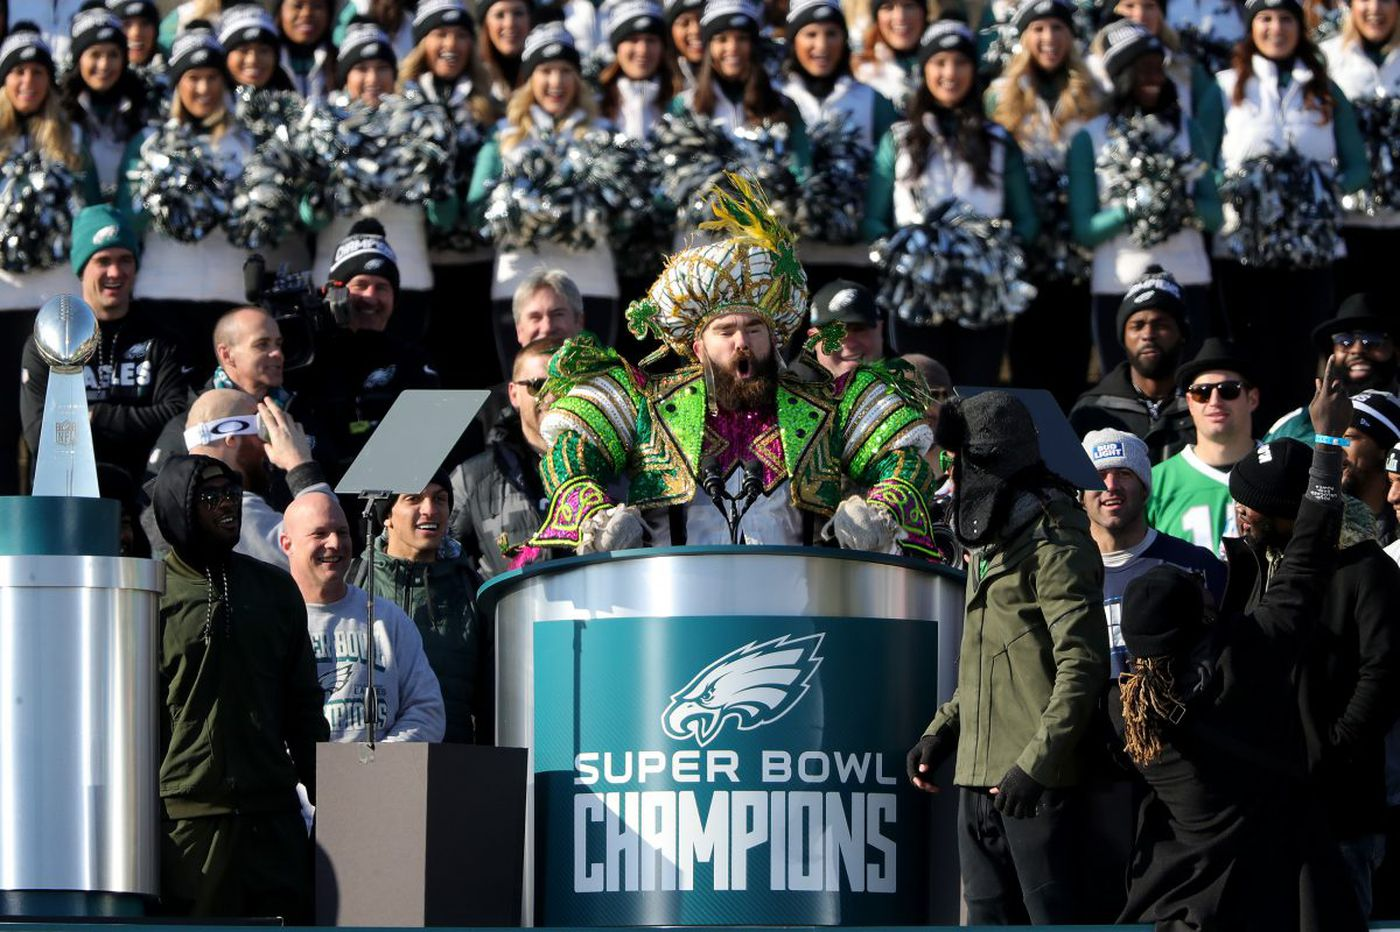 Jason Kelce's speech at Eagles parade connects with passion, sincerity | Marcus Hayes